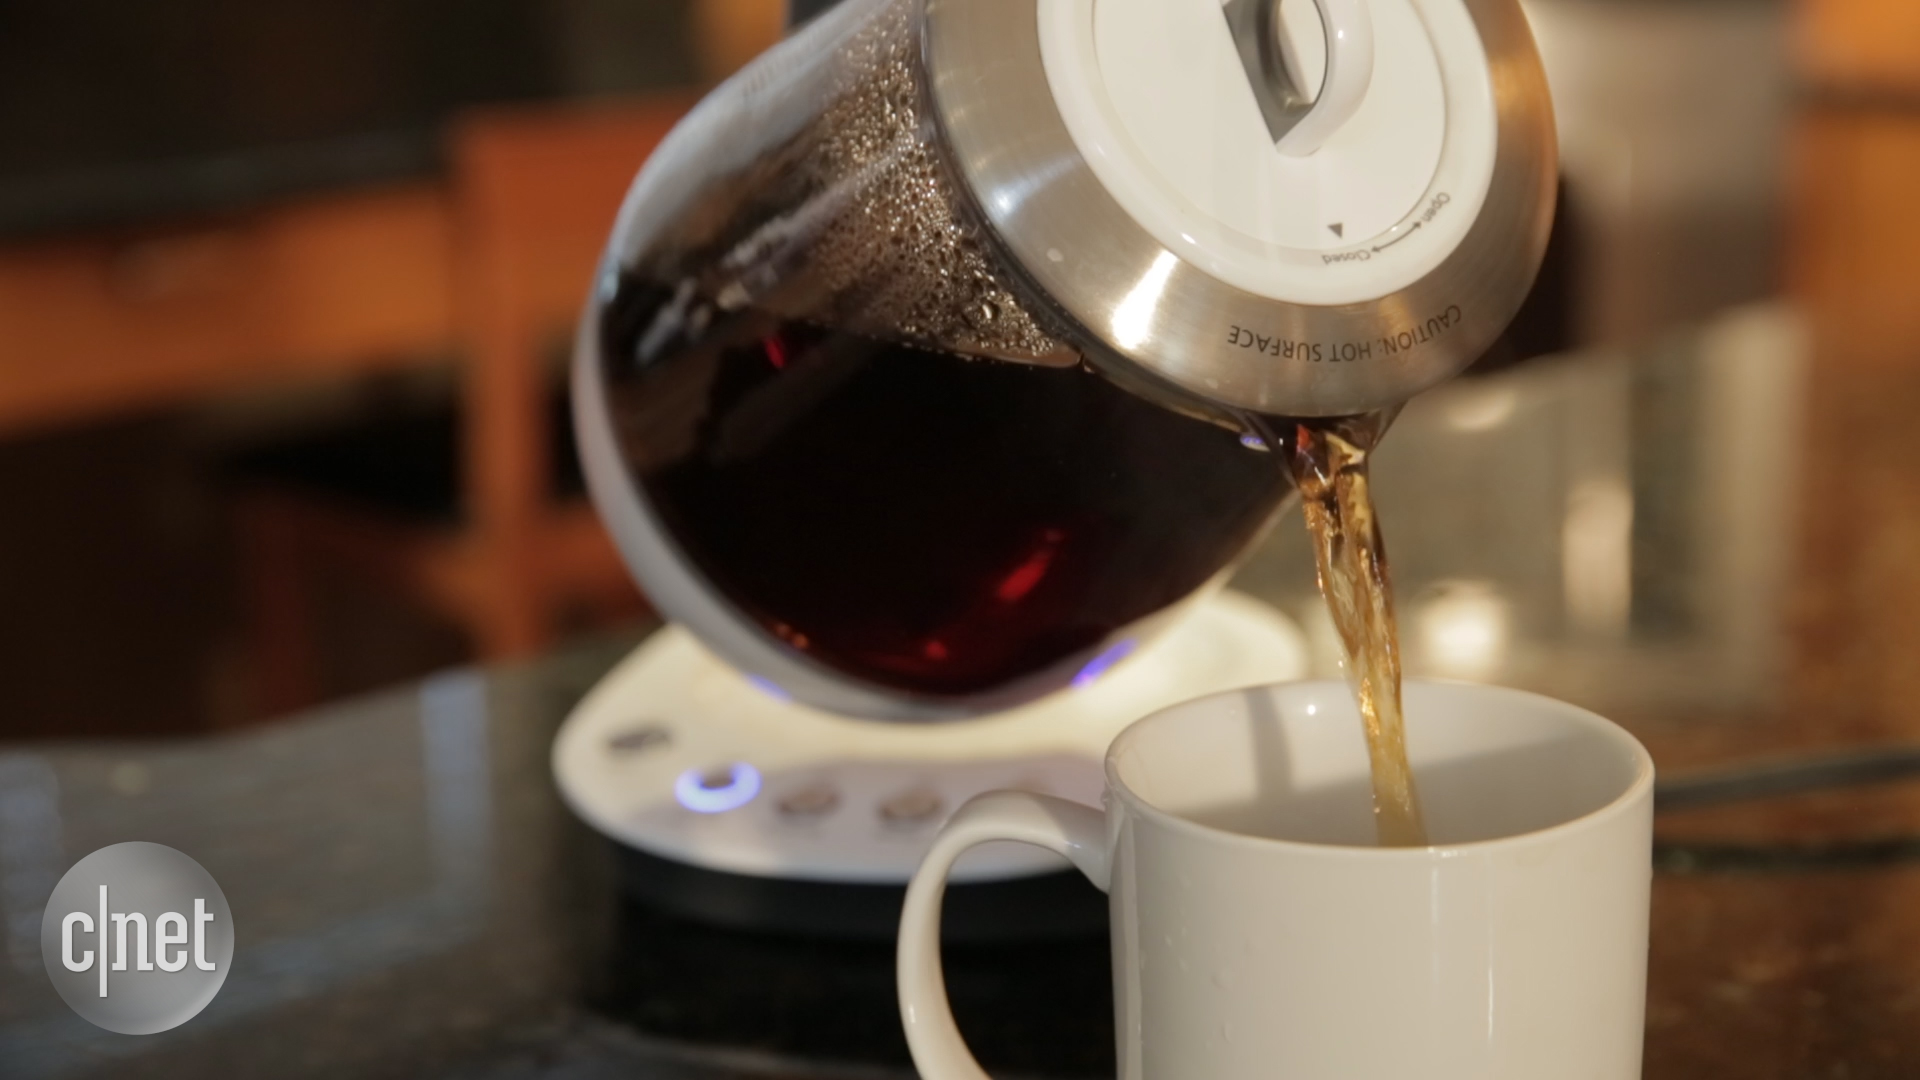 Video: Mr. Coffee's Tea Maker and Kettle treats its leaves differently